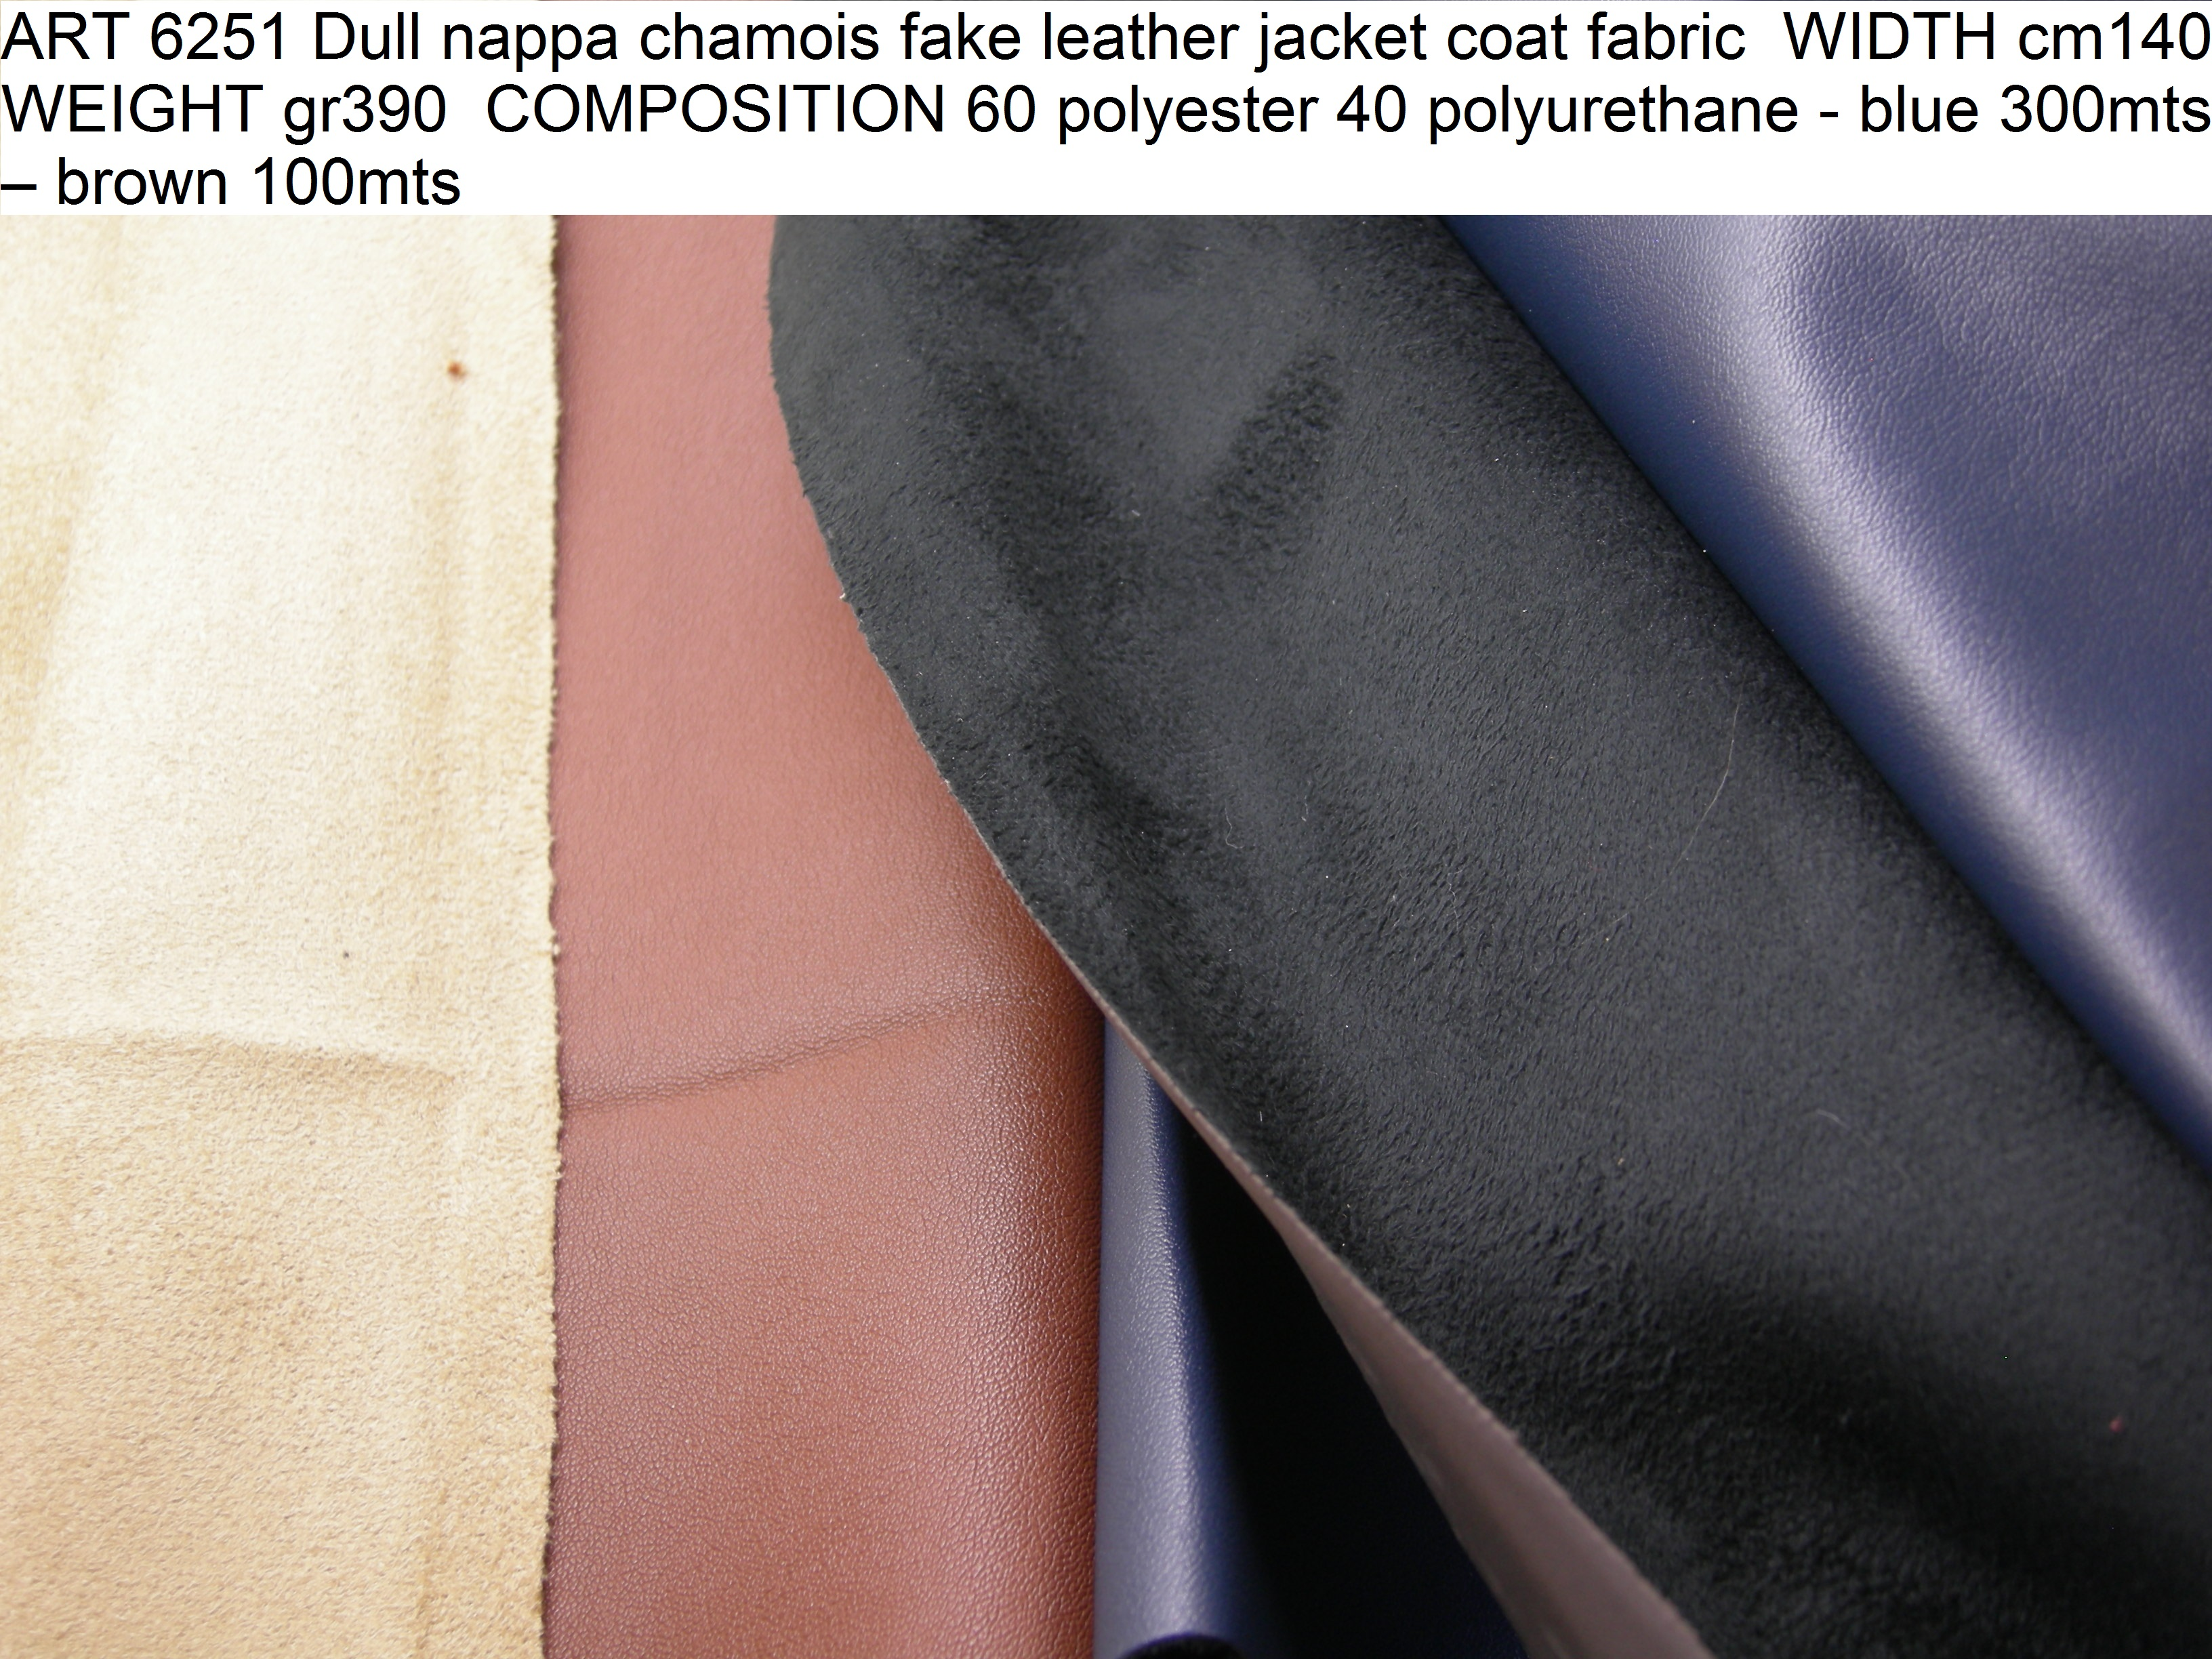 ART 6251 Dull nappa chamois fake leather jacket coat fabric WIDTH cm140 WEIGHT gr390 COMPOSITION 60 polyester 40 polyurethane - blue 300mts – brown 100mts